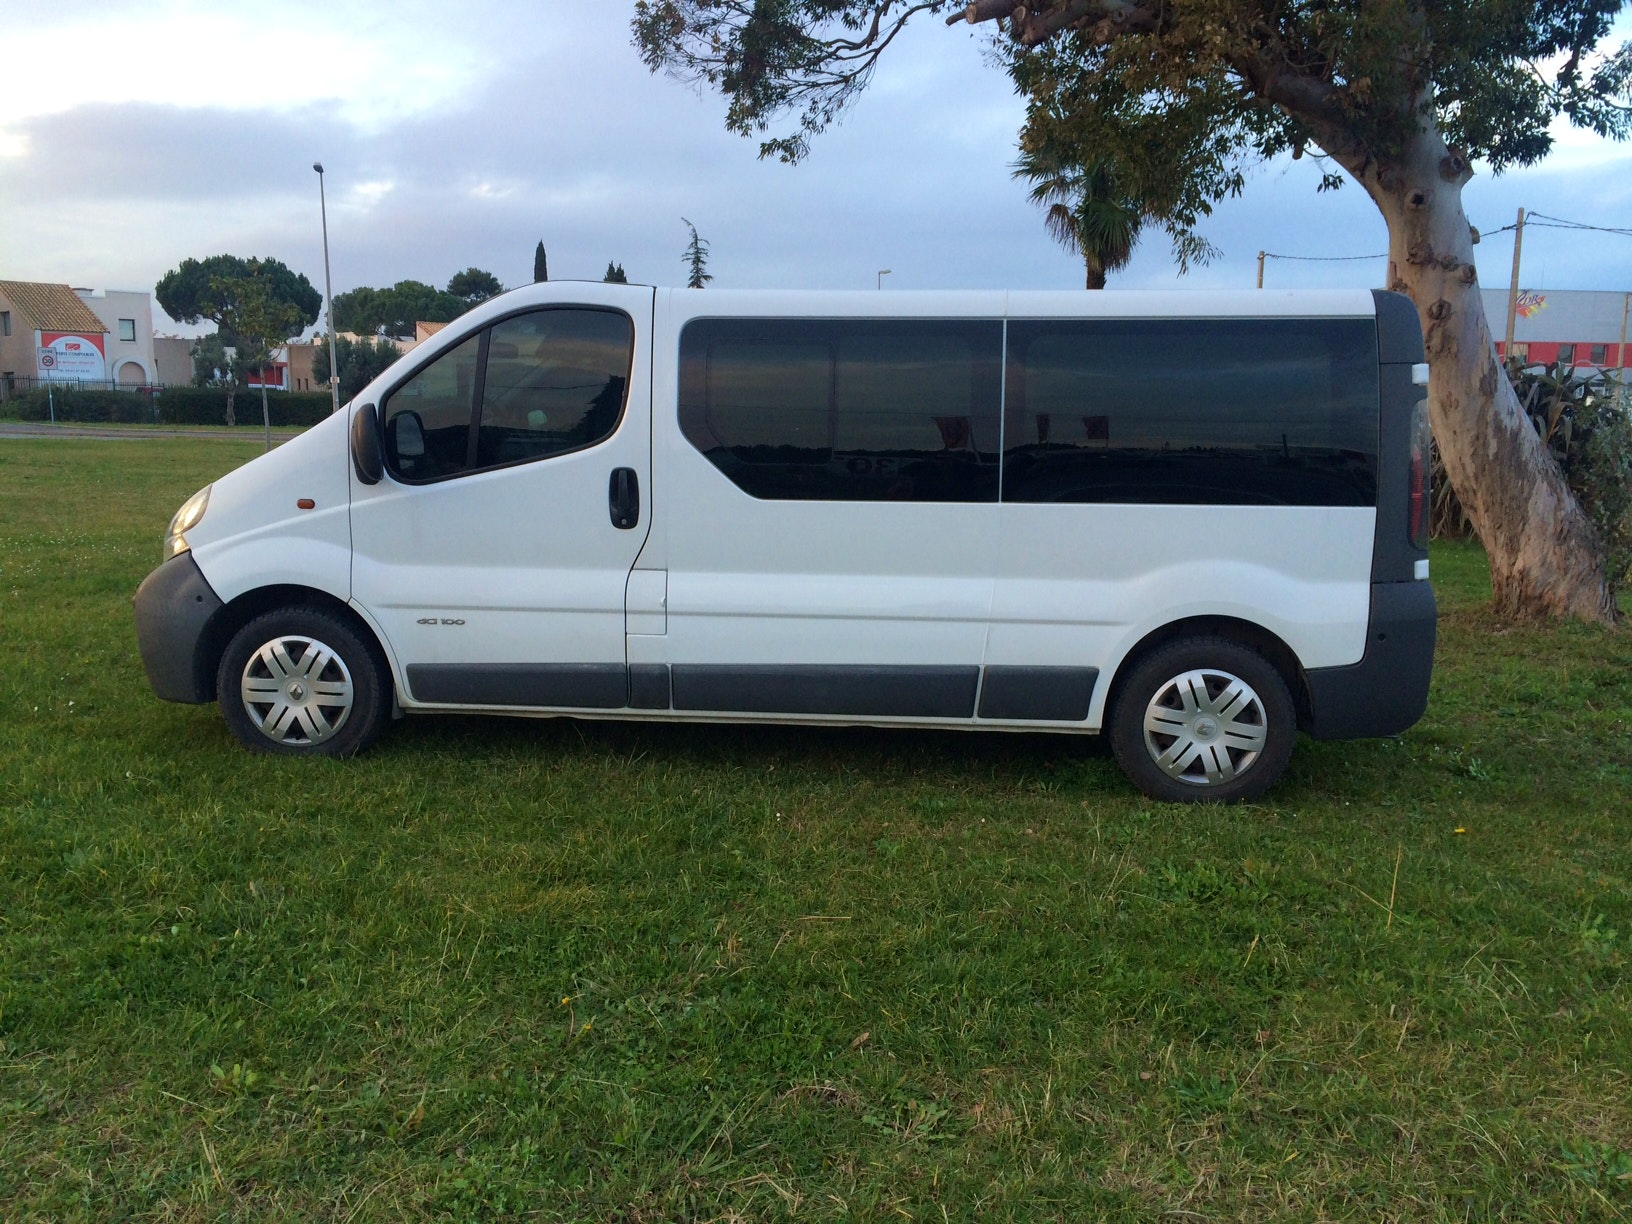 RENAULT TRAFIC 9 PLACES RALLONGE CLIM/CD, 2006, Diesel, 9 places et plus - Minibus Montpellier (34)